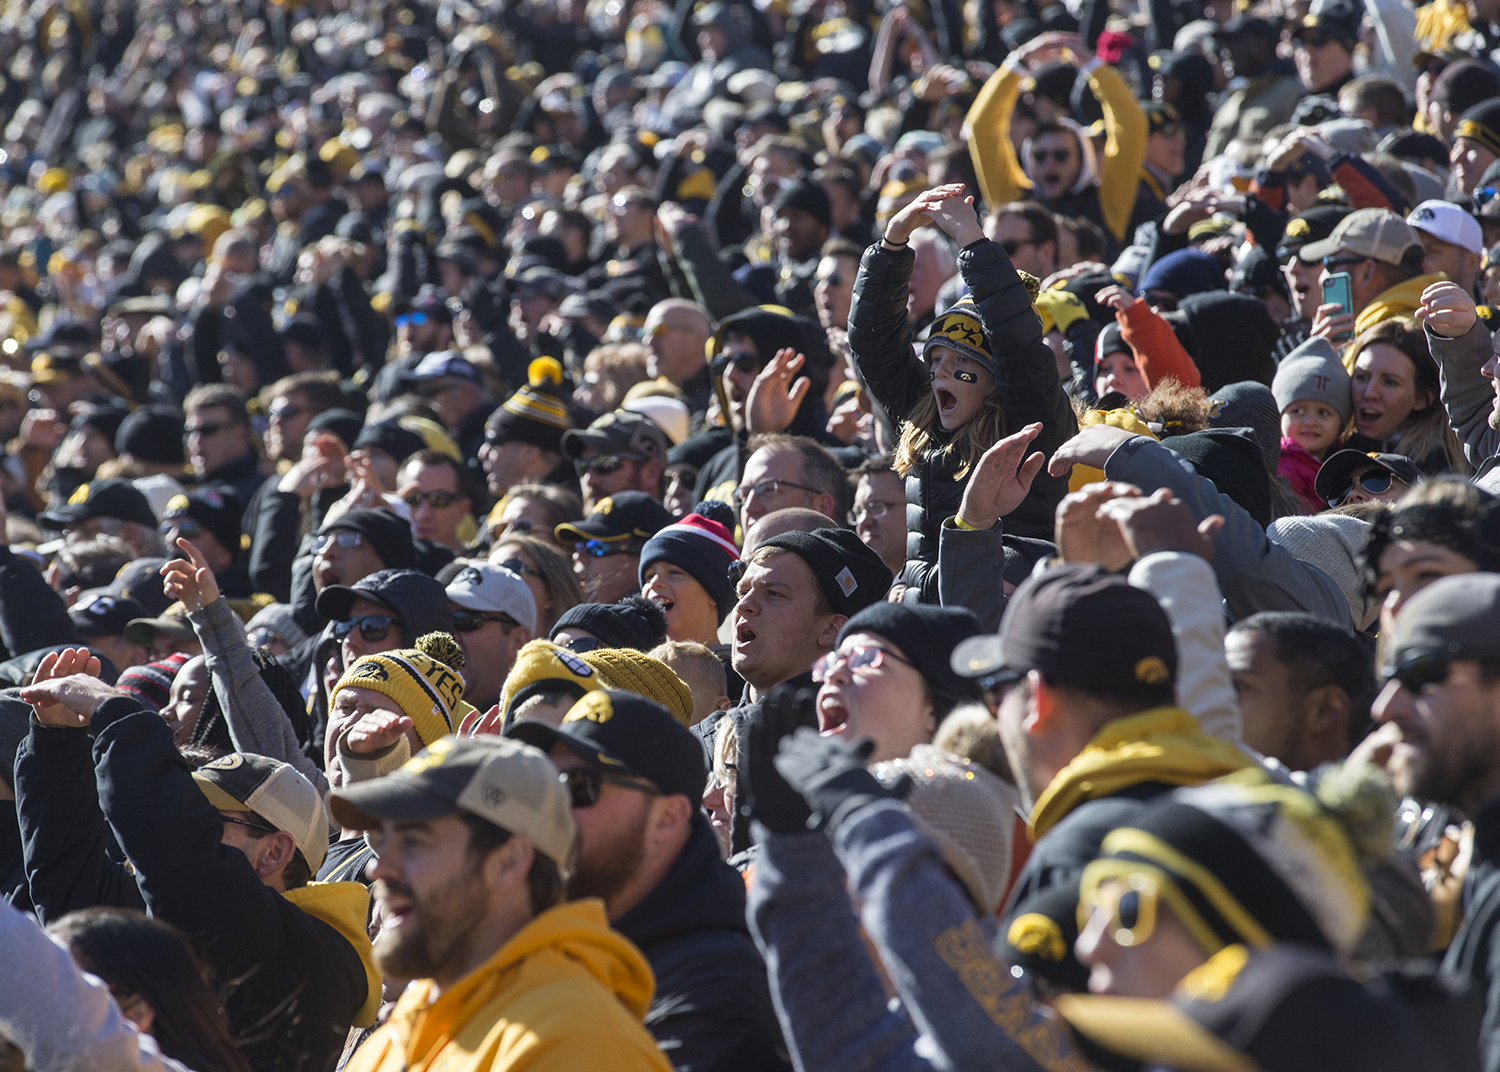 Fans+spectate+during+the+Iowa+vs.+Maryland+game+at+Kinnick+stadium+on+Saturday+Oct.+20%2C+2018.+The+Hawkeyes+defeated+the+Terrapins+23-0.+